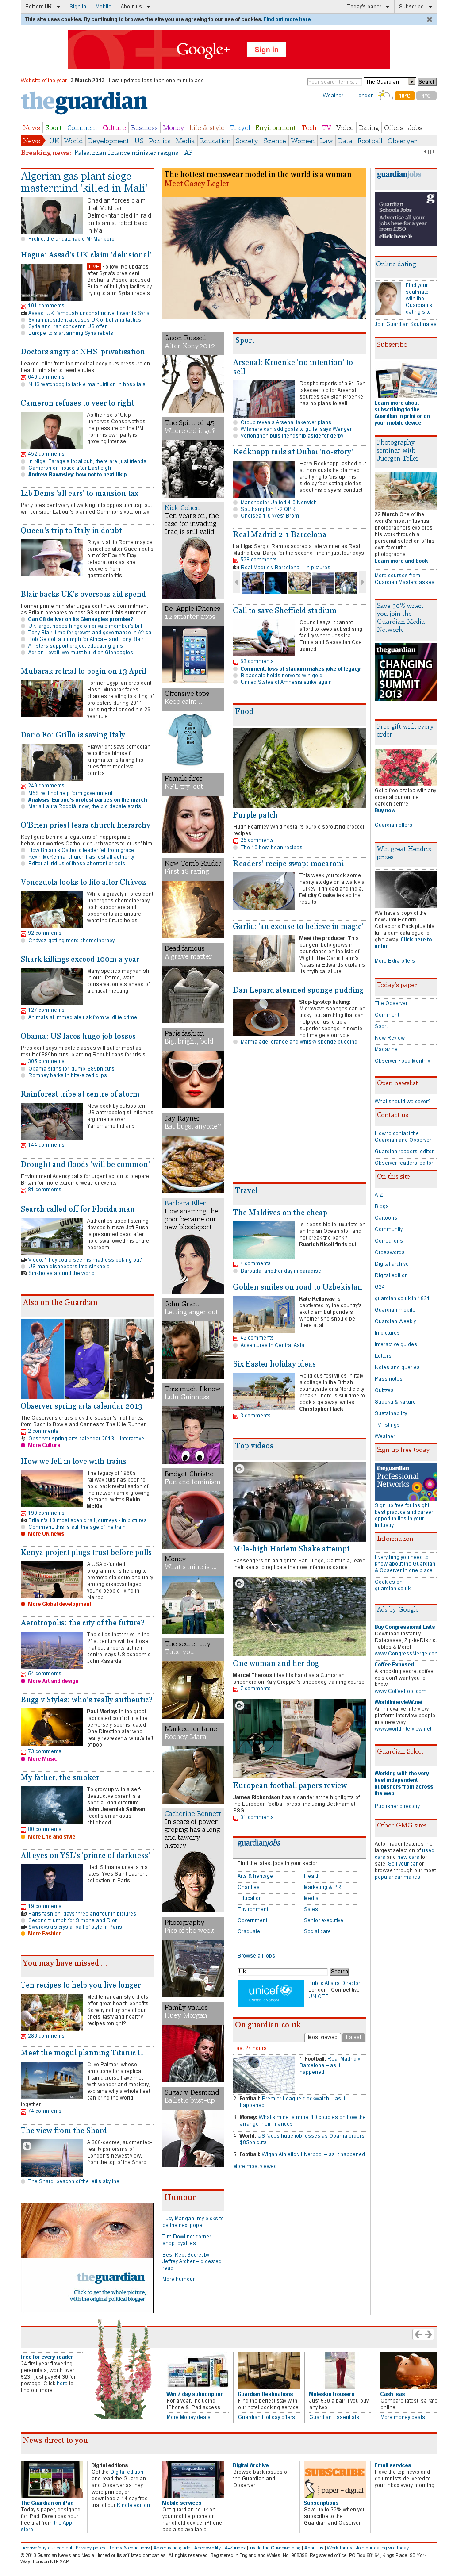 The Guardian at Sunday March 3, 2013, 12:07 p.m. UTC